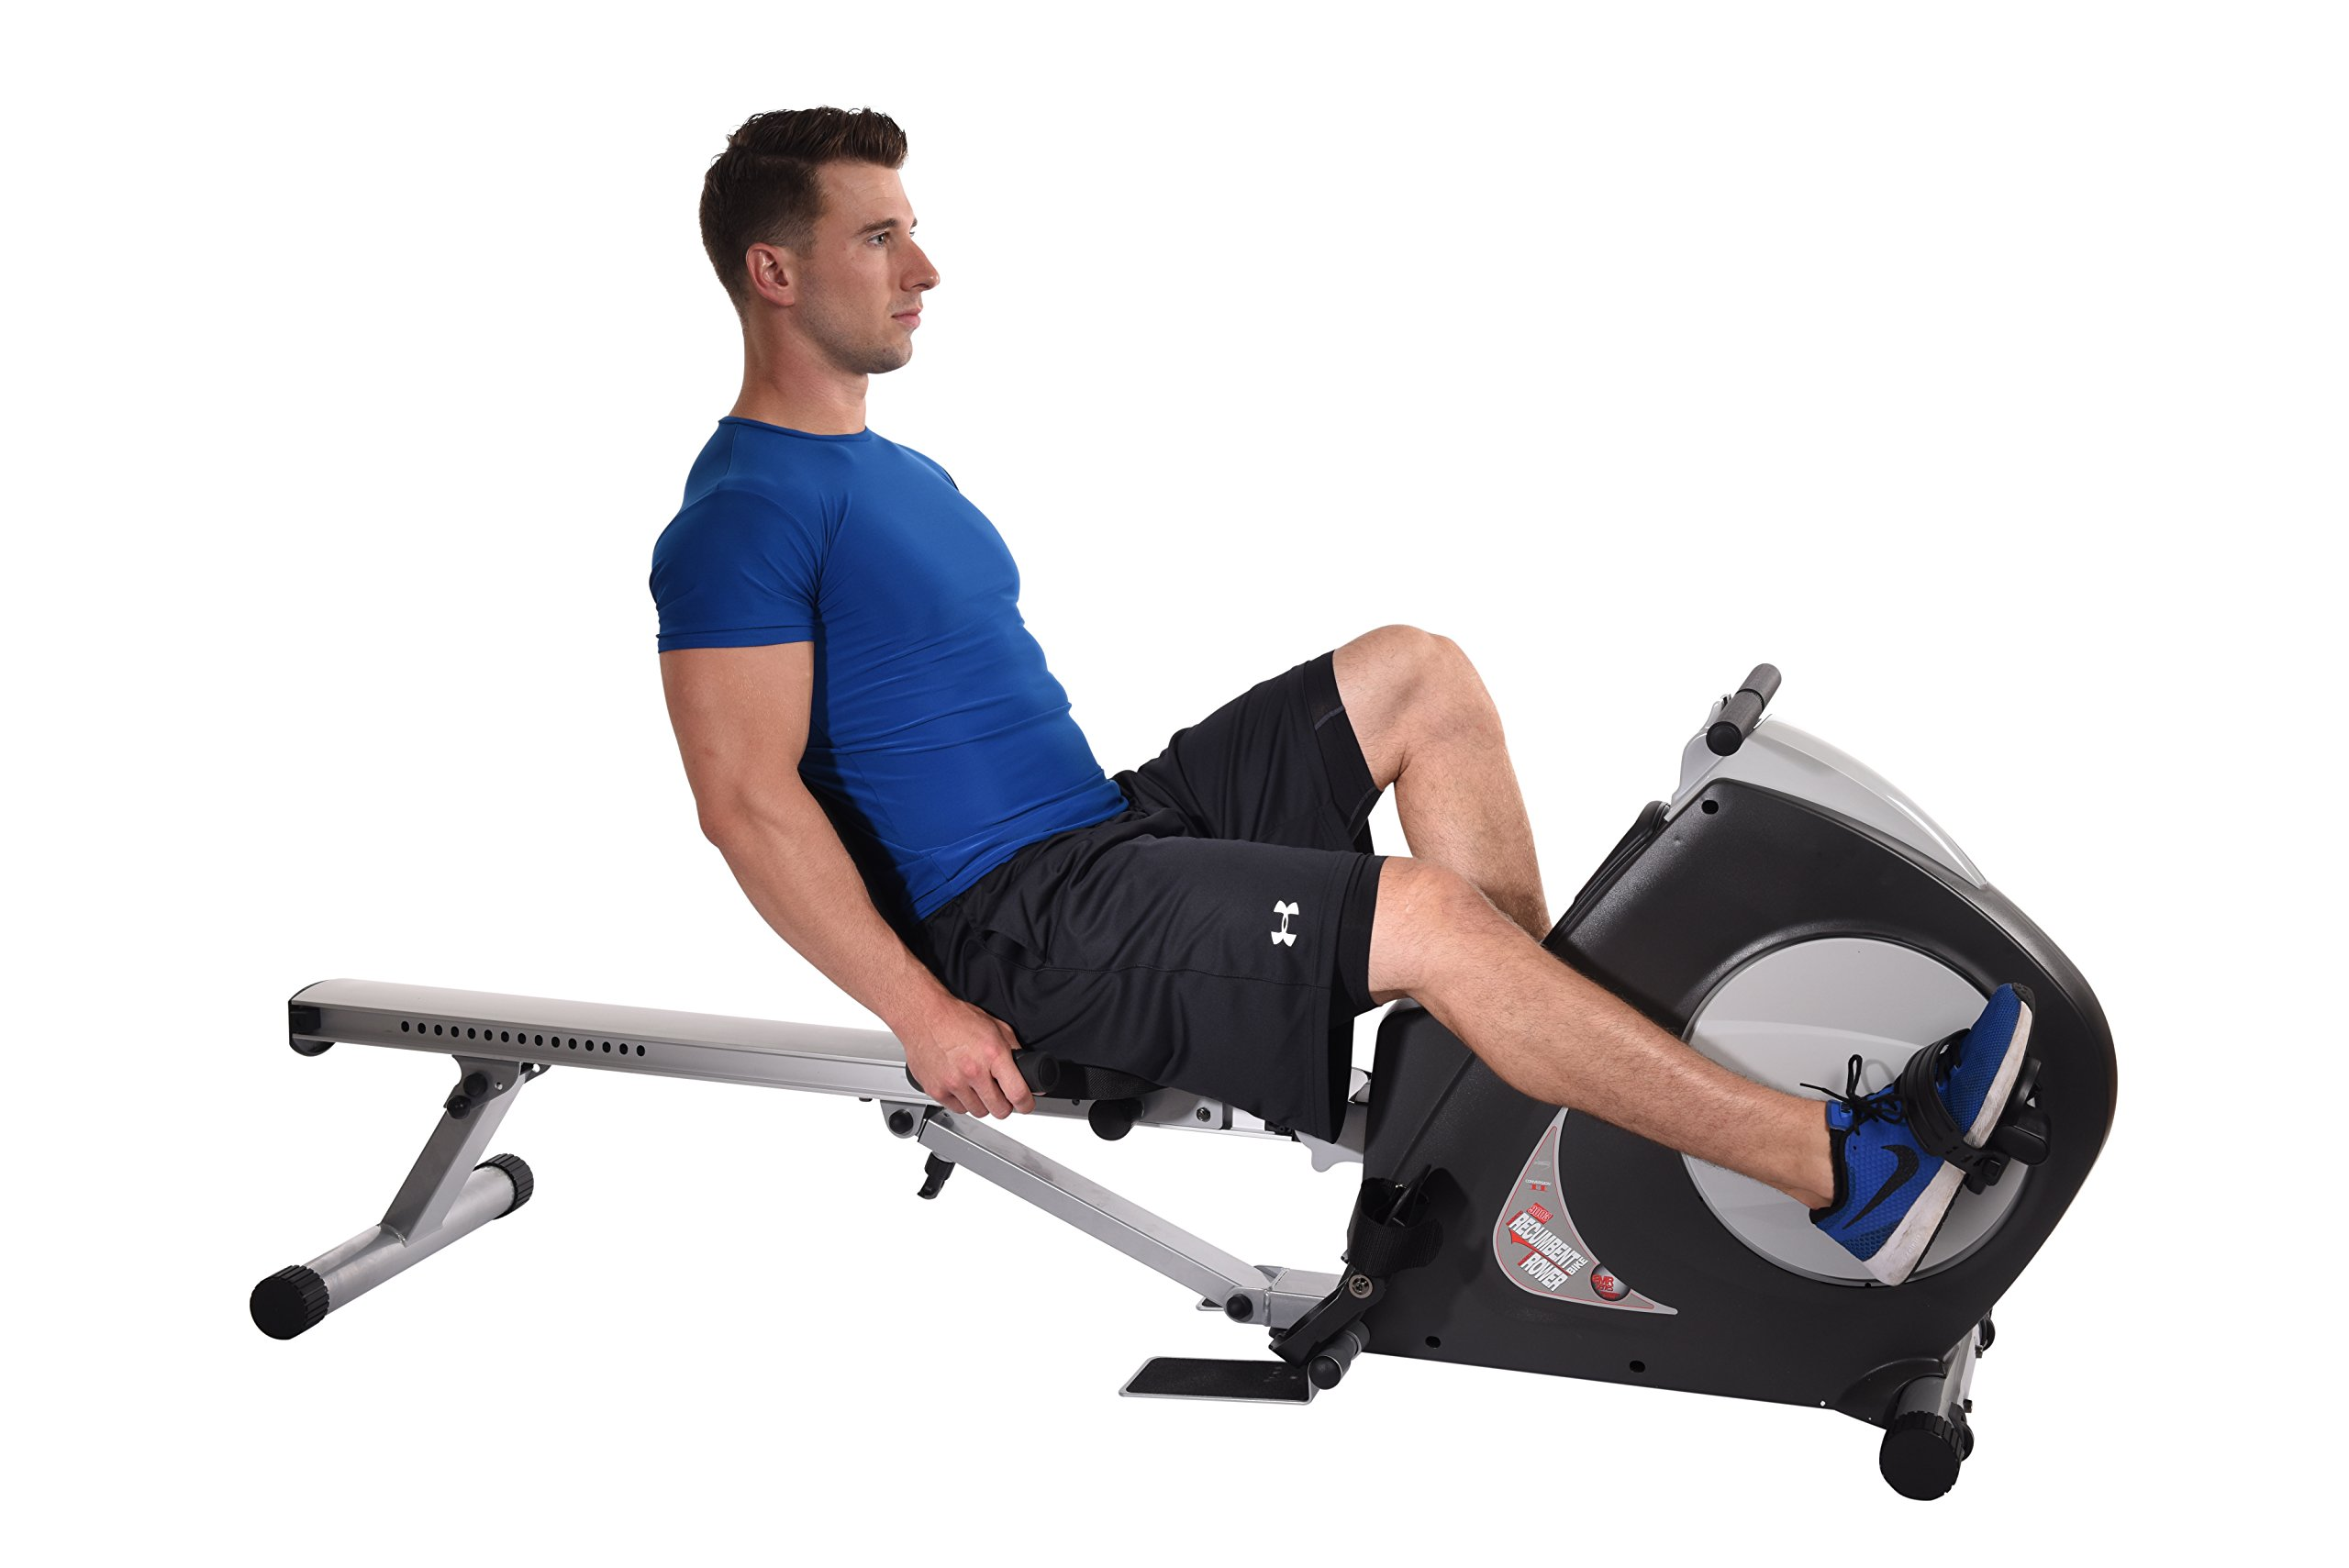 Stamina 15-9003 Deluxe Conversion II Recumbent / Rower by Stamina (Image #3)